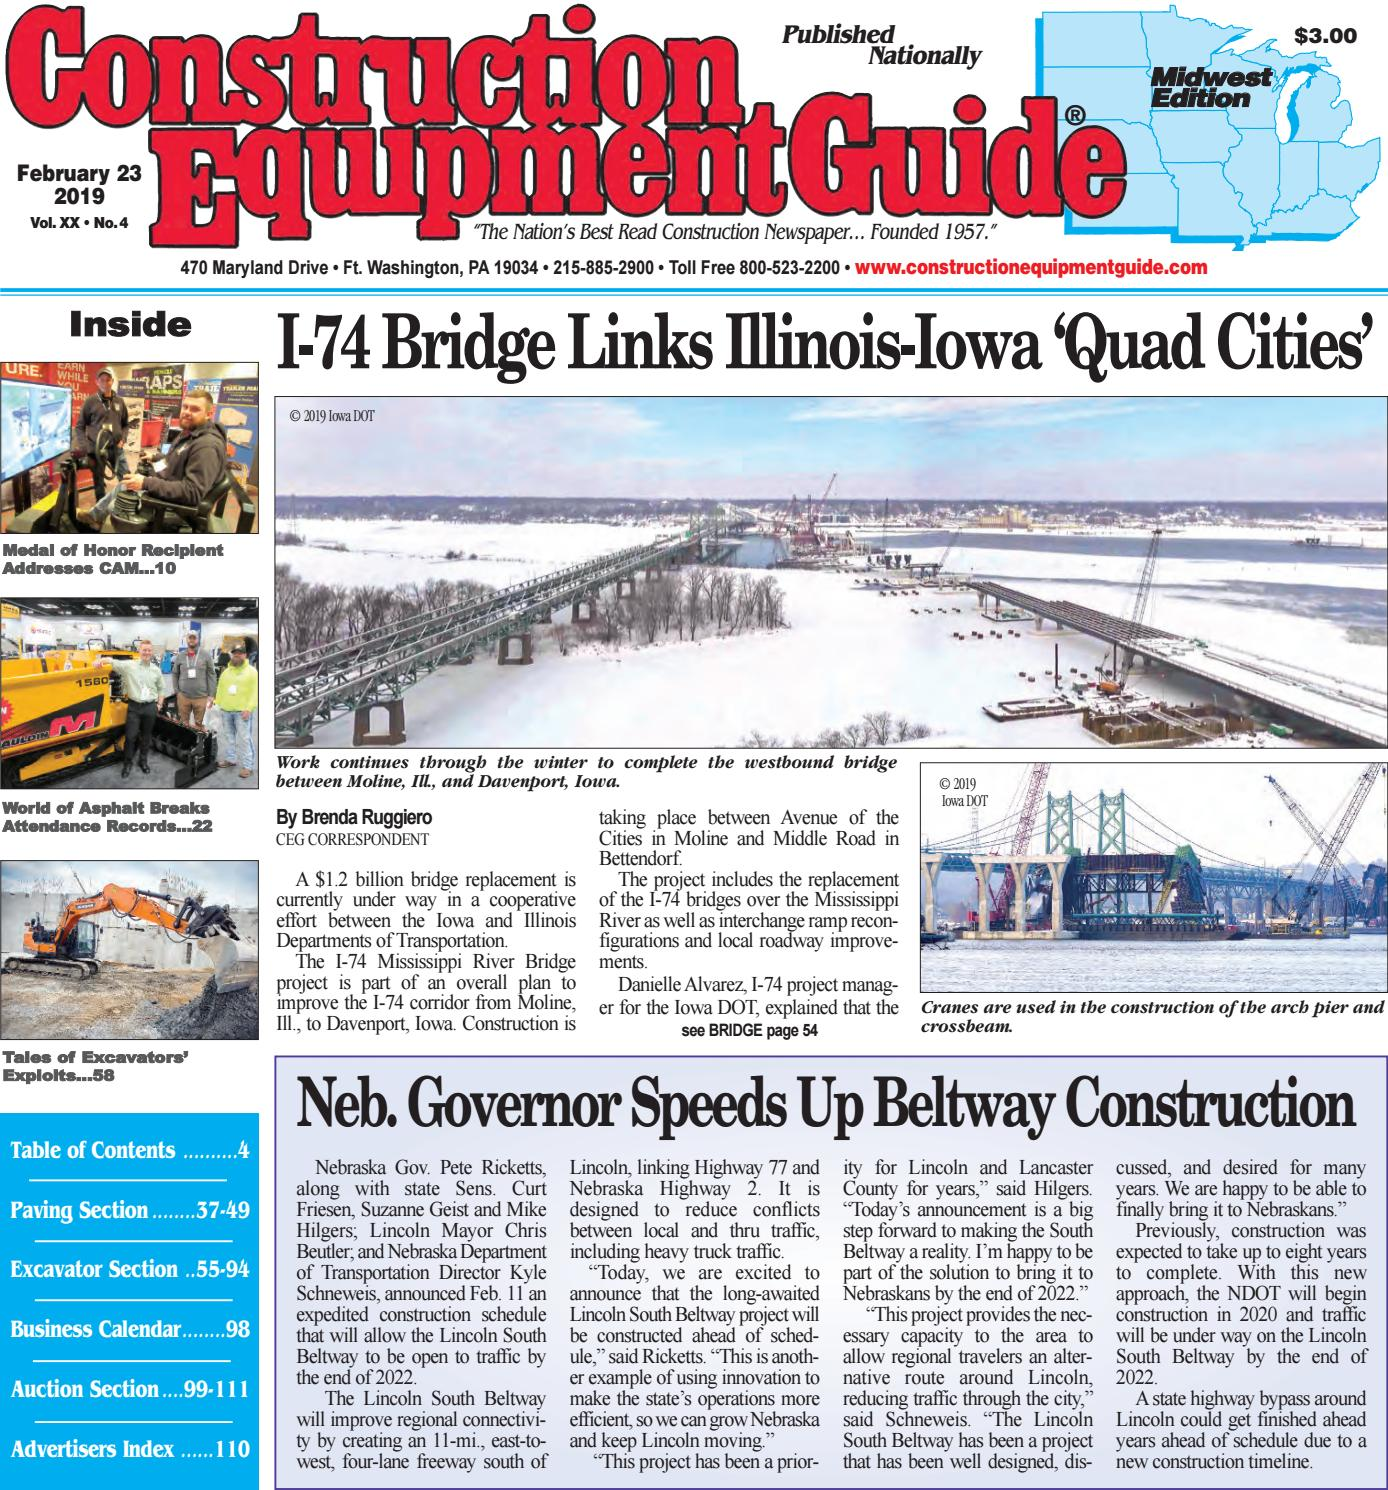 Midwest 4 February 23, 2019 by Construction Equipment Guide - issuu